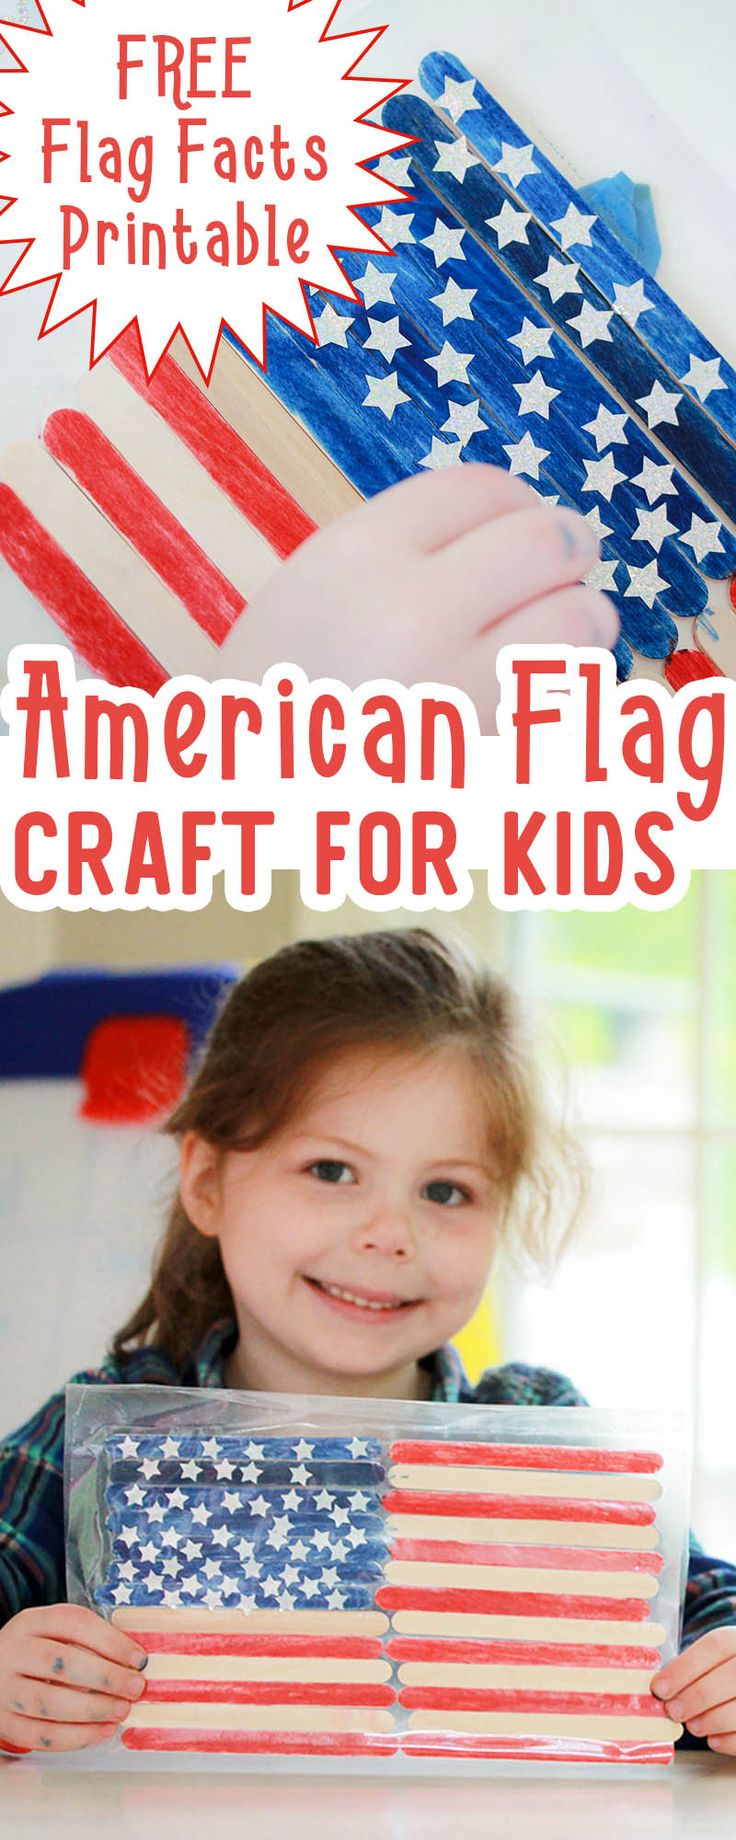 A simple Patriotic craft for kids and history lesson in one! Get the free American Flag for kids printable facts sheet, and using basic craft materials let your kids make their own American flags | US History | July 4th | Flag Day | Crafts for Kids | Preschool | Kindergarten